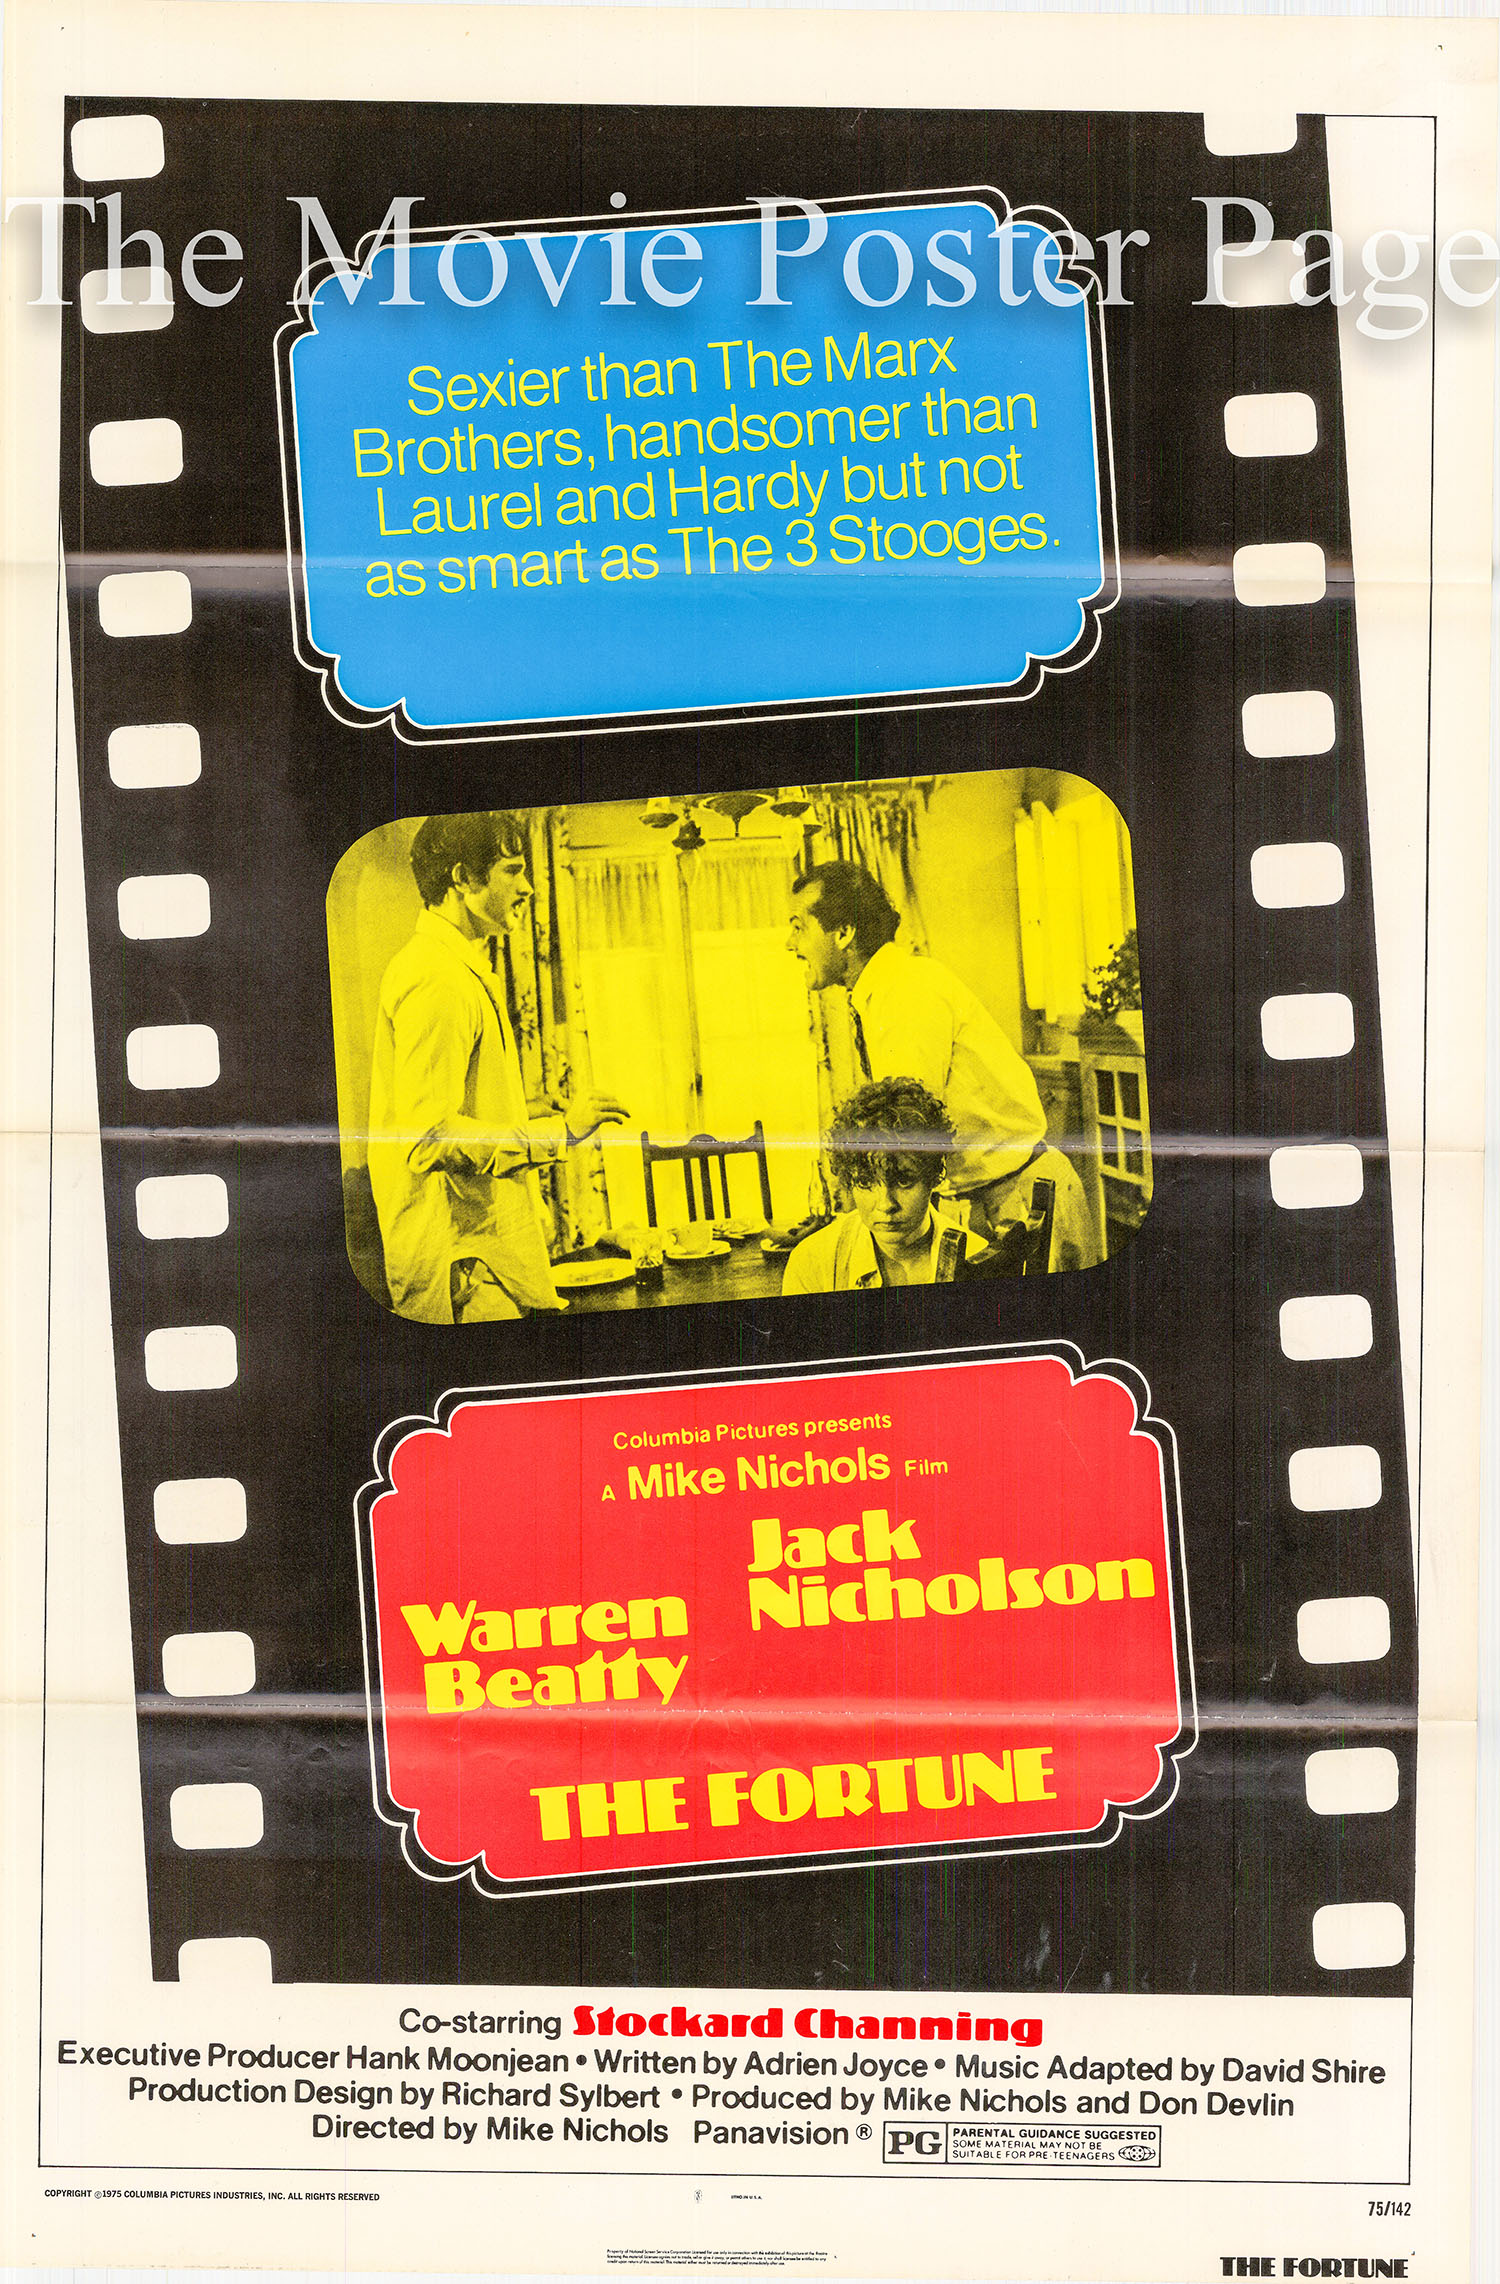 Pictured is a US one-sheet promotional poster for the 1975 Mike Nichols film The Fortune starring Jack Nicholson as Oscar.